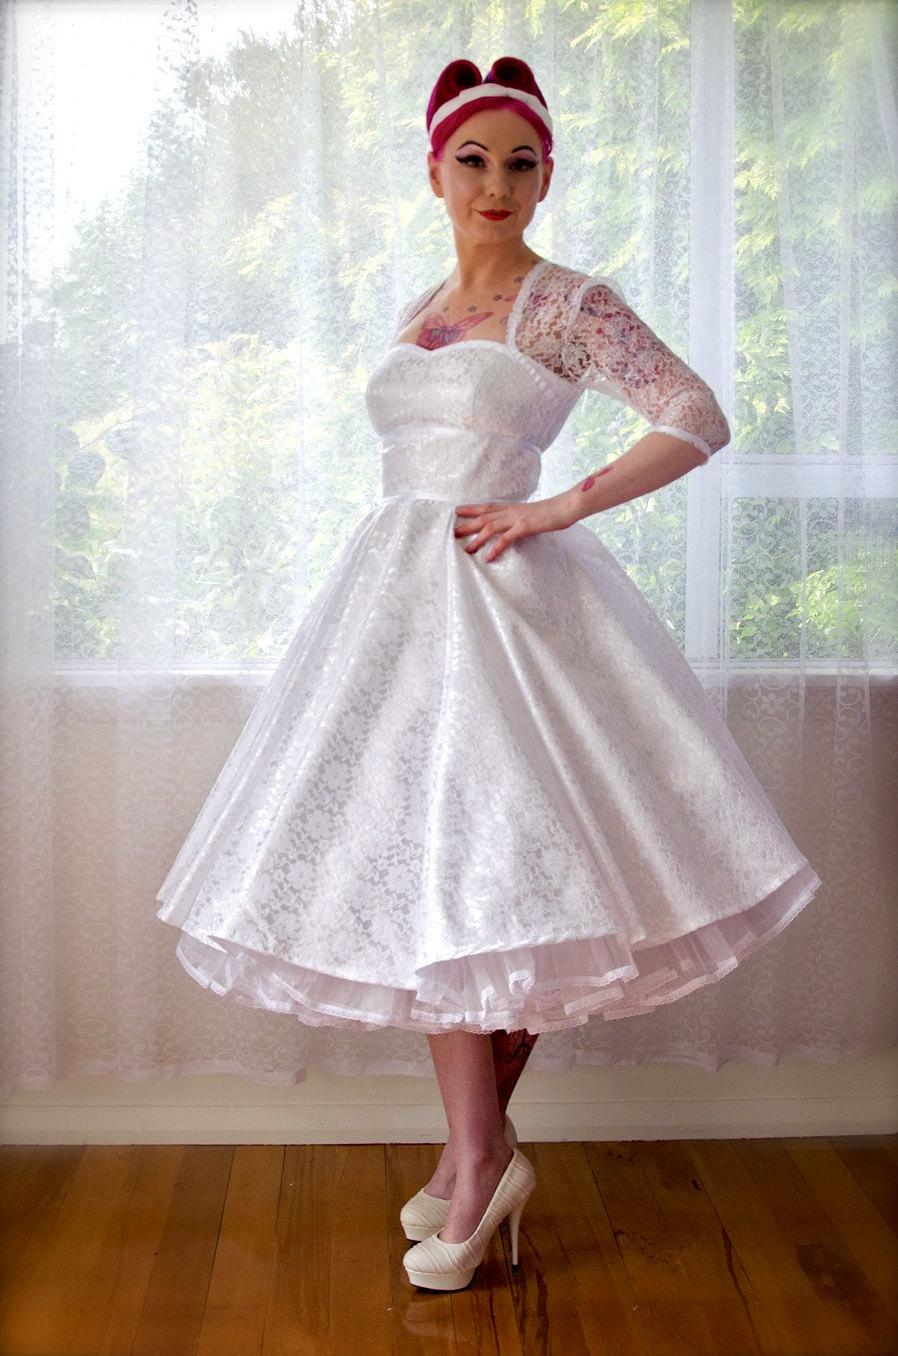 1950's Rockabilly Lorilynwedding Dress With Sleeves Lace Overlay Ribbon Trim Tea Length Skirt And Petticoat Custom Made To Fit: Edgy Tea Length Wedding Dresses At Reisefeber.org